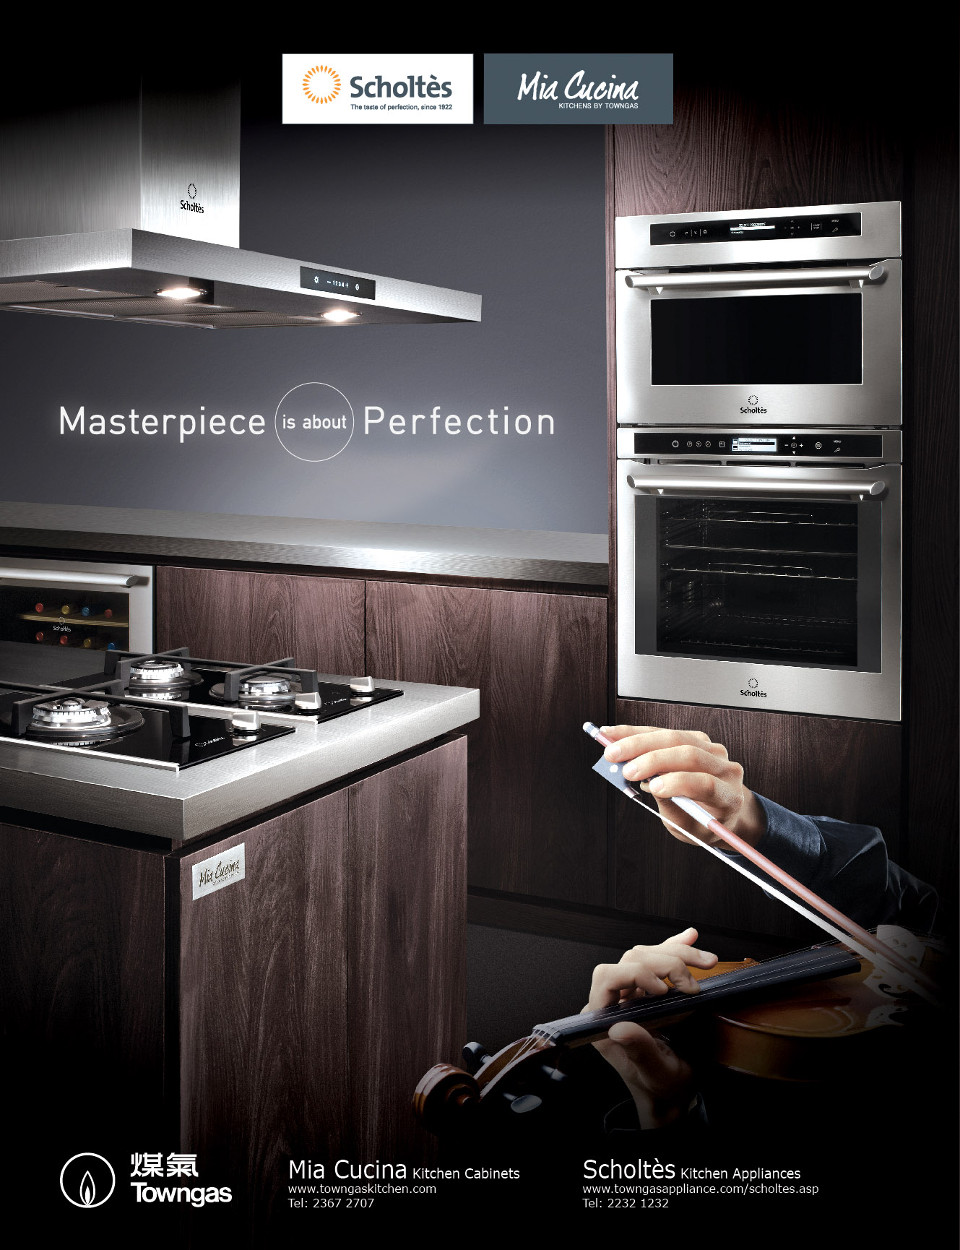 Cucina Kitchen Appliances Scholtès And Mia Cucina Join Hands To Launch First Tv Commercial